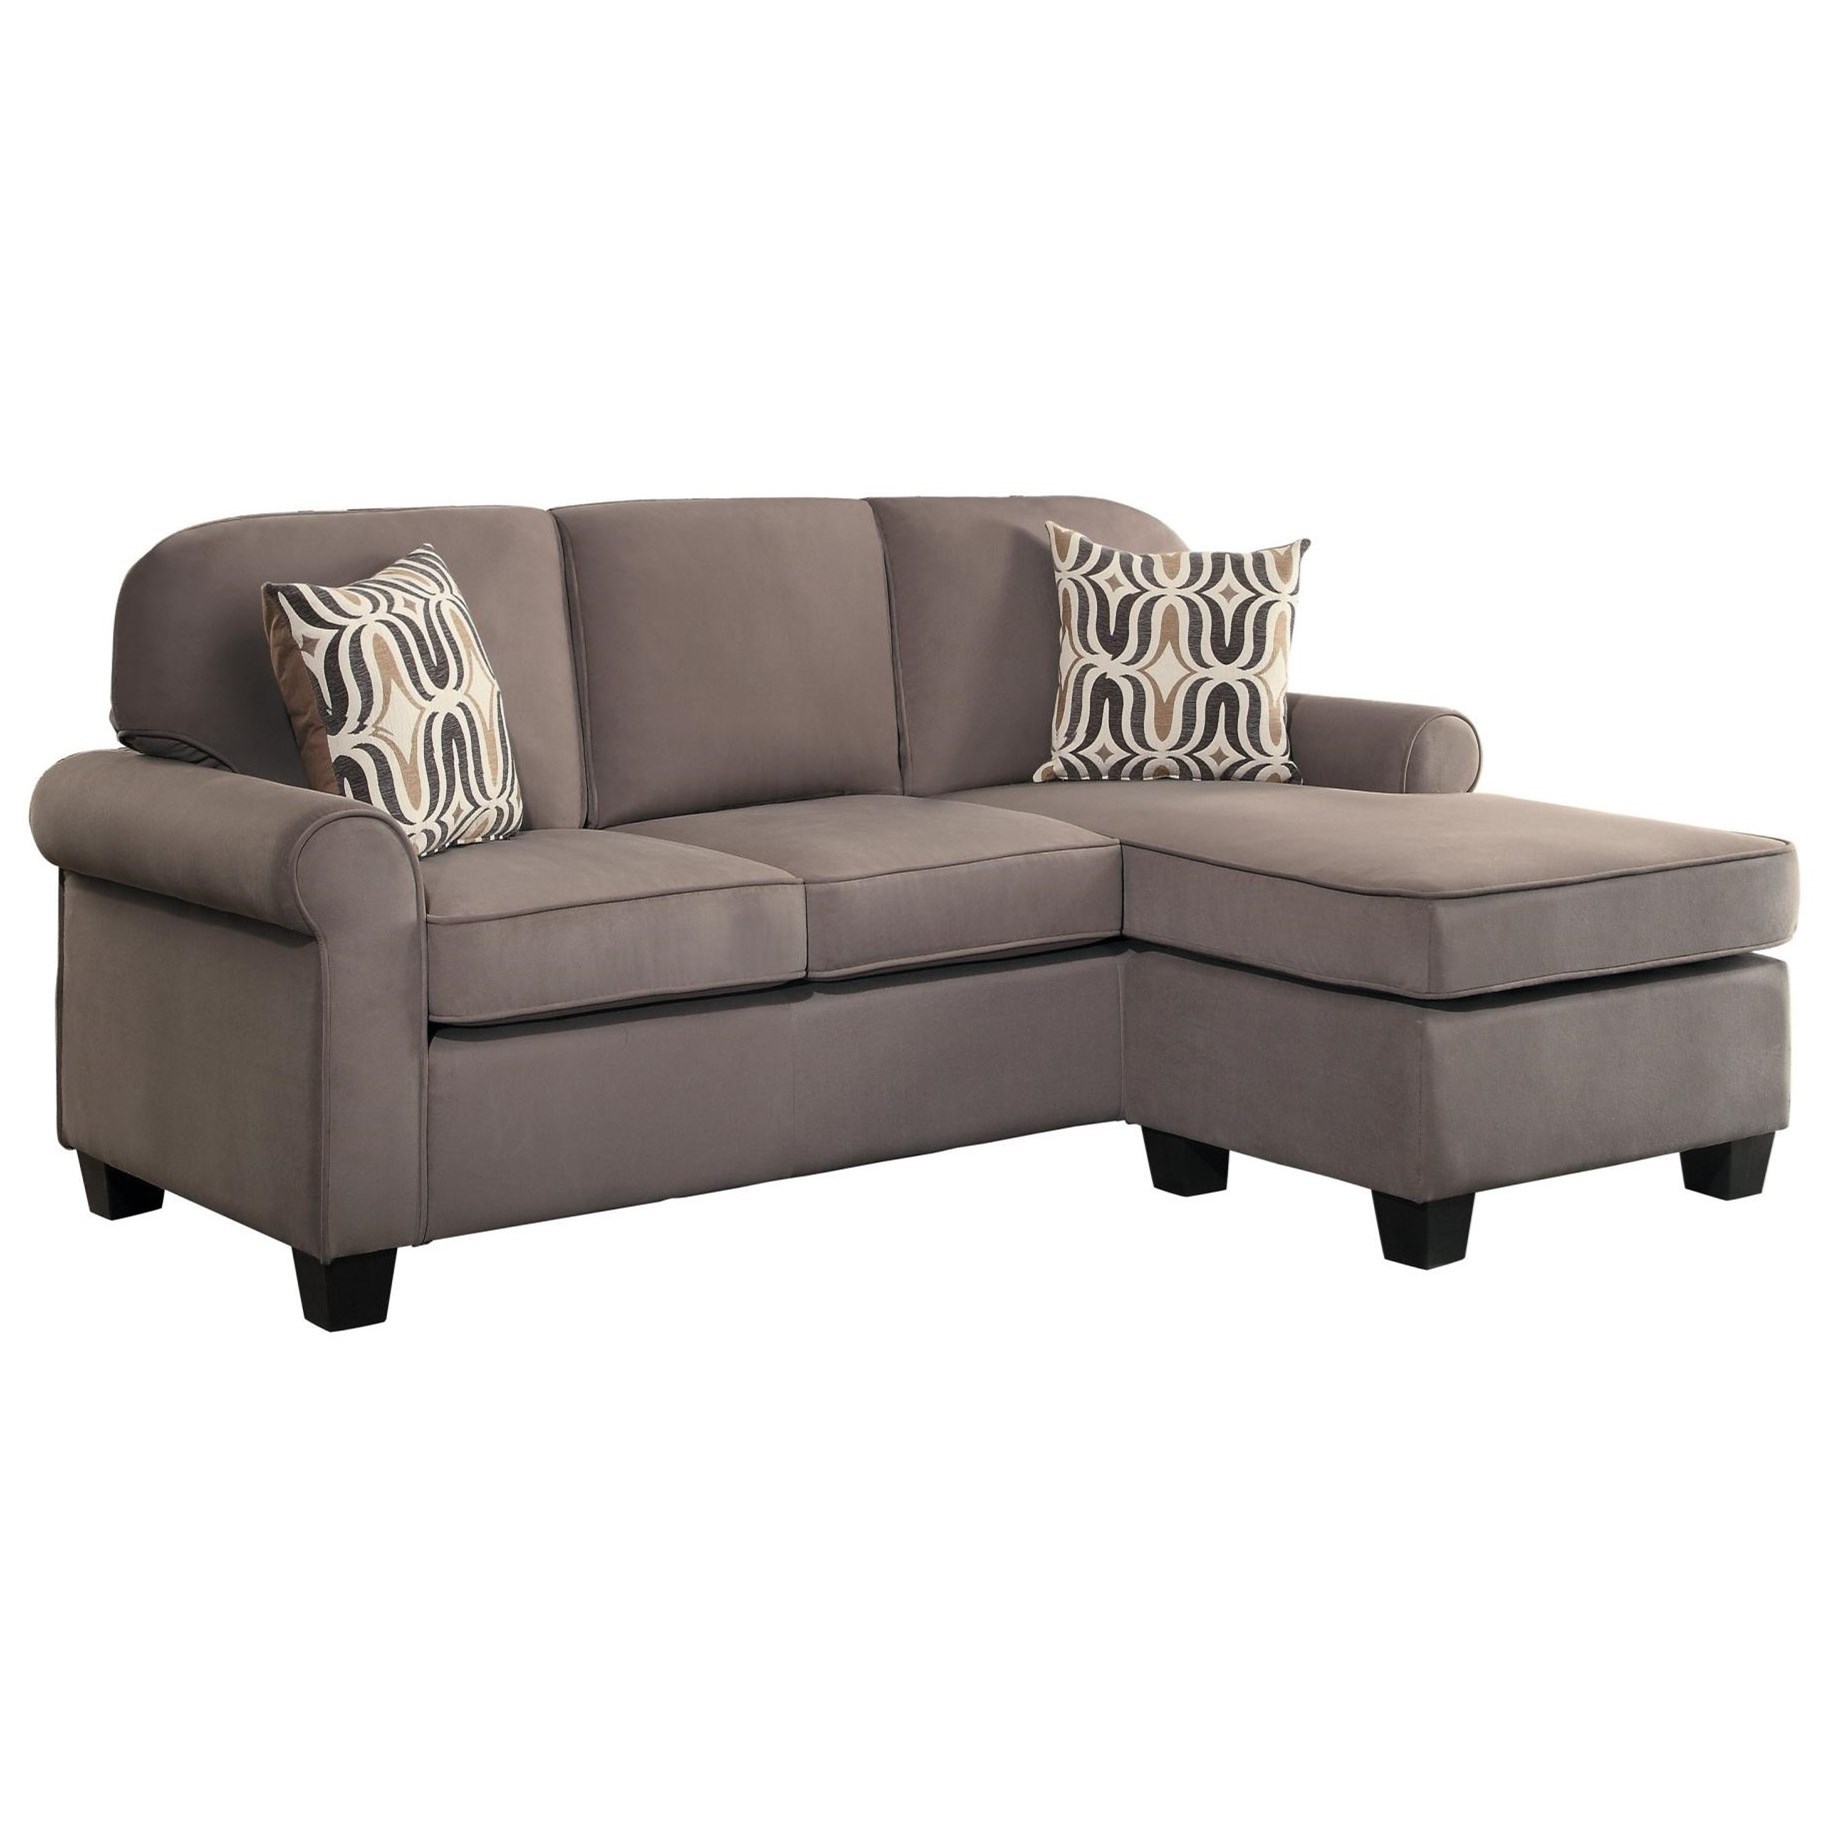 Homelegance Sprague Transitional Sofa With Reversible Chaise